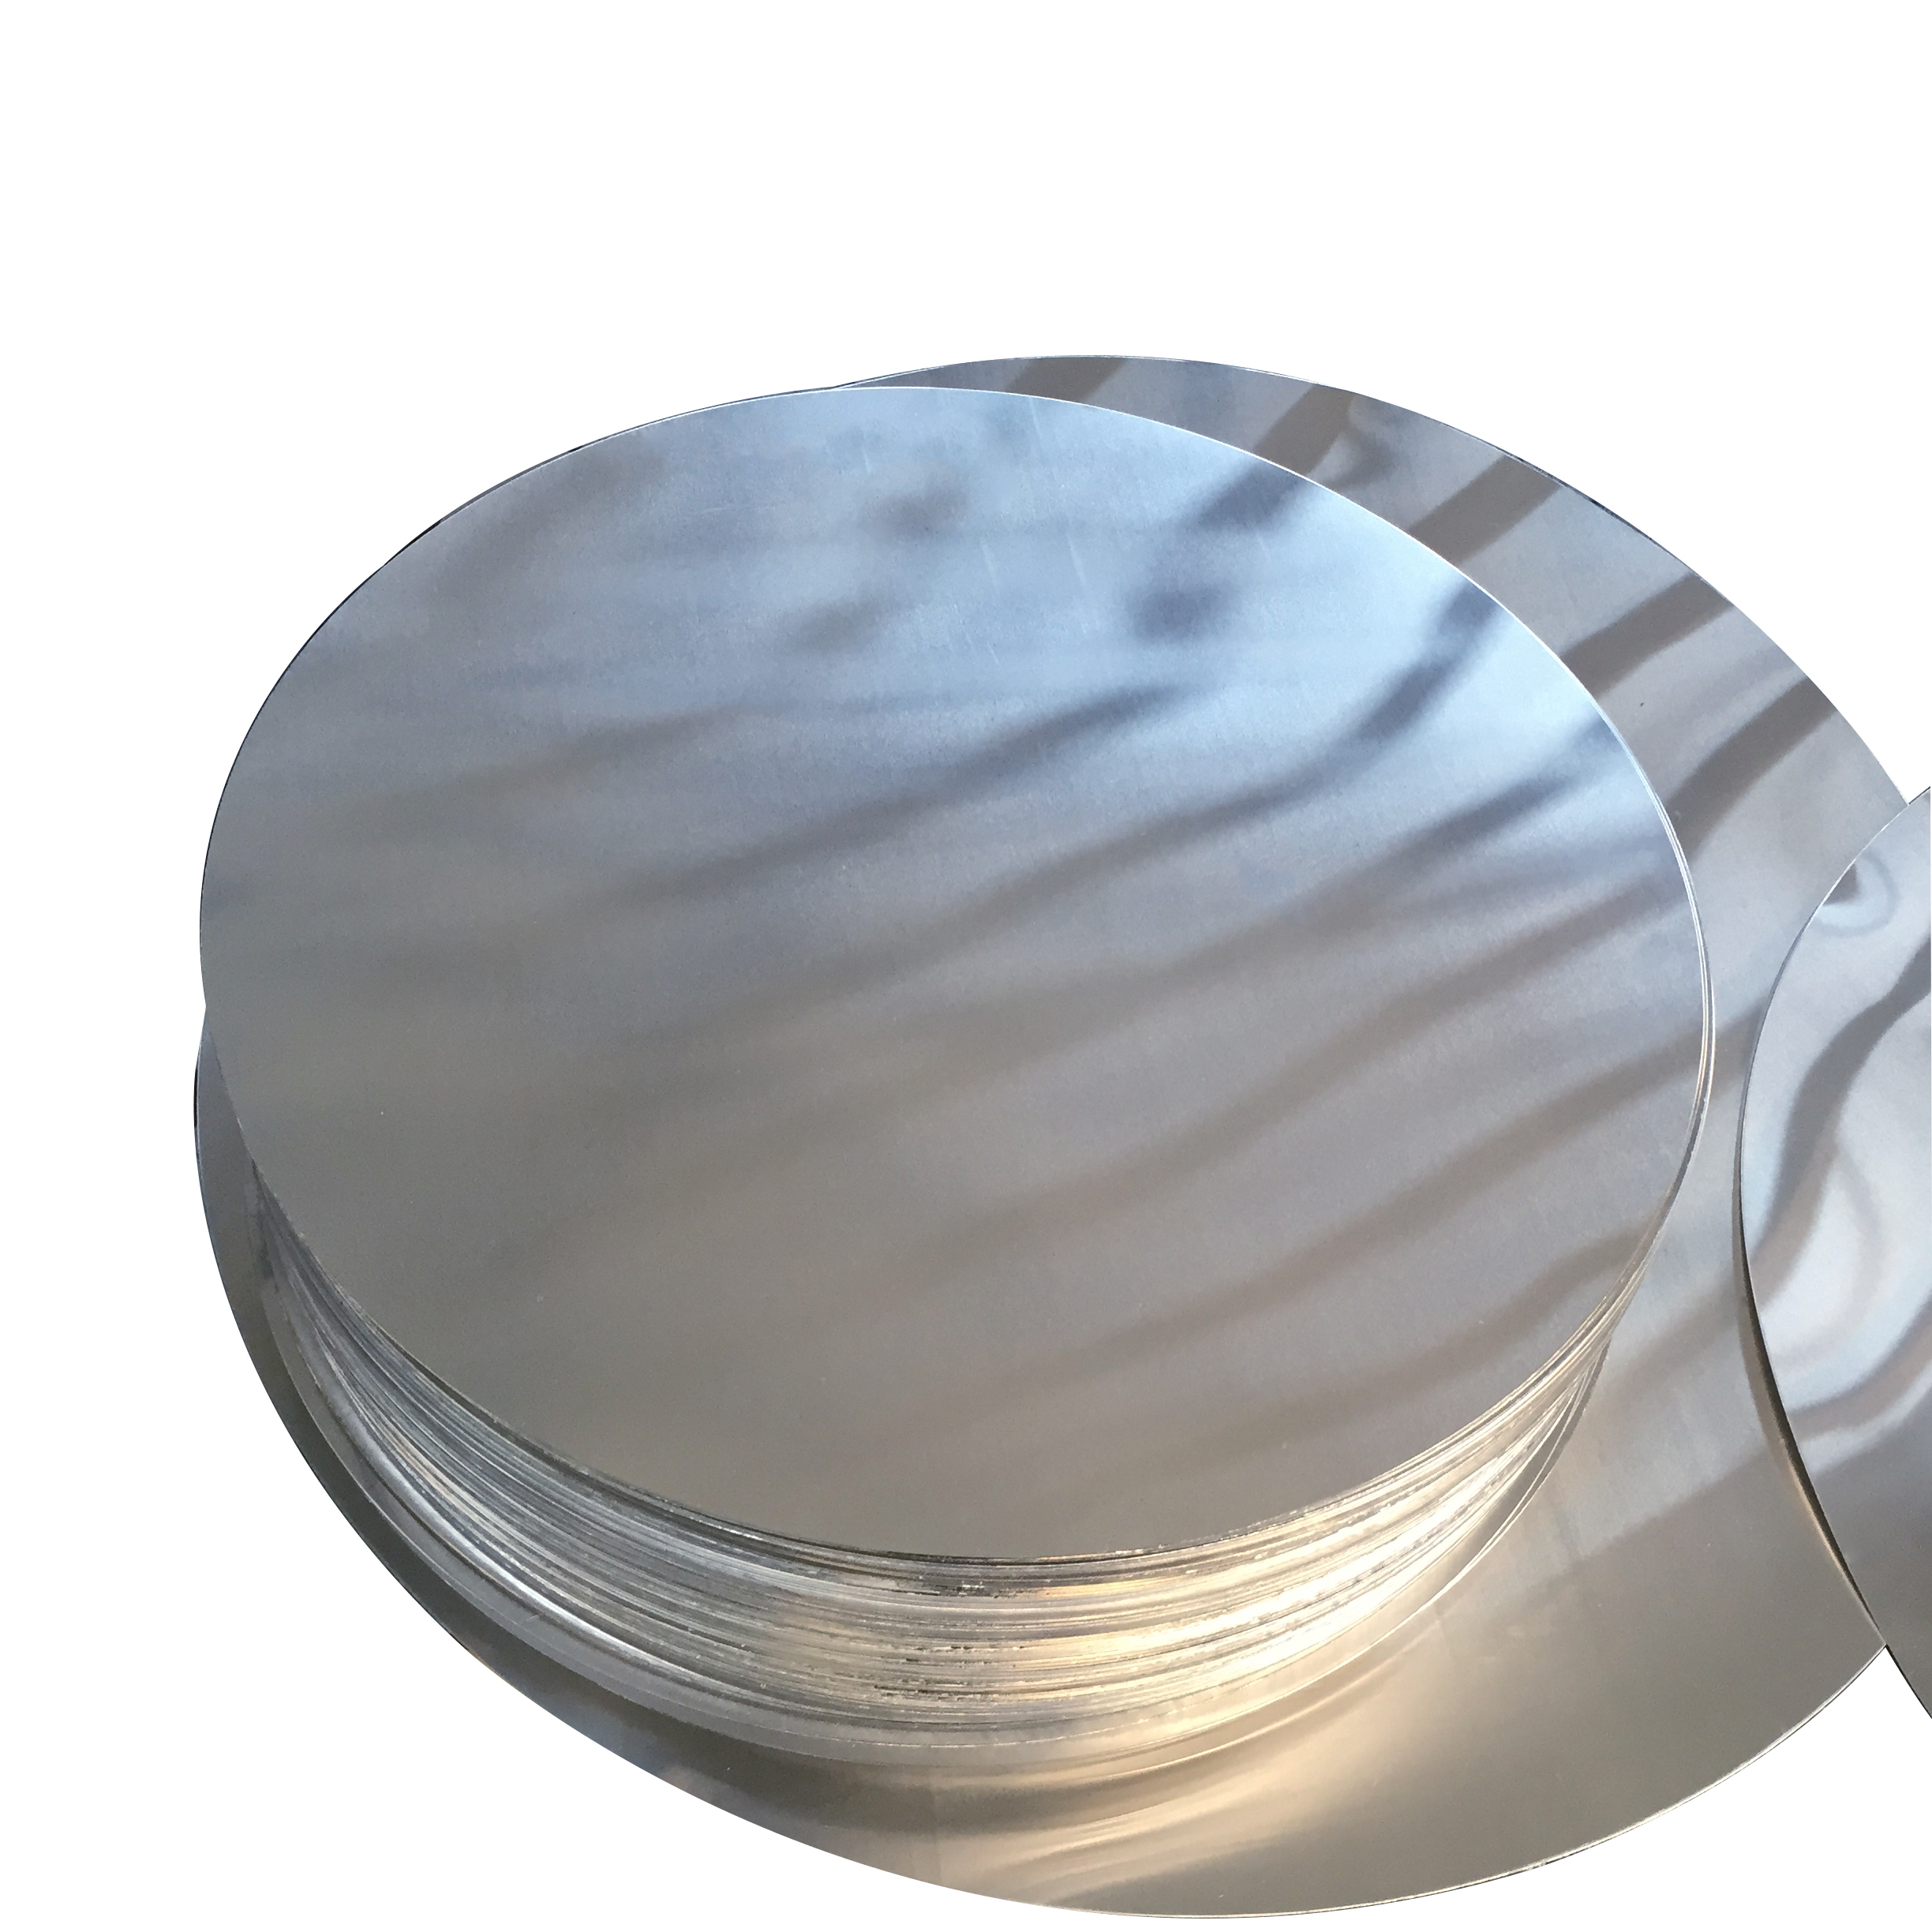 Food warmer Aluminum Disc/Circle for cookware kitchen utensils